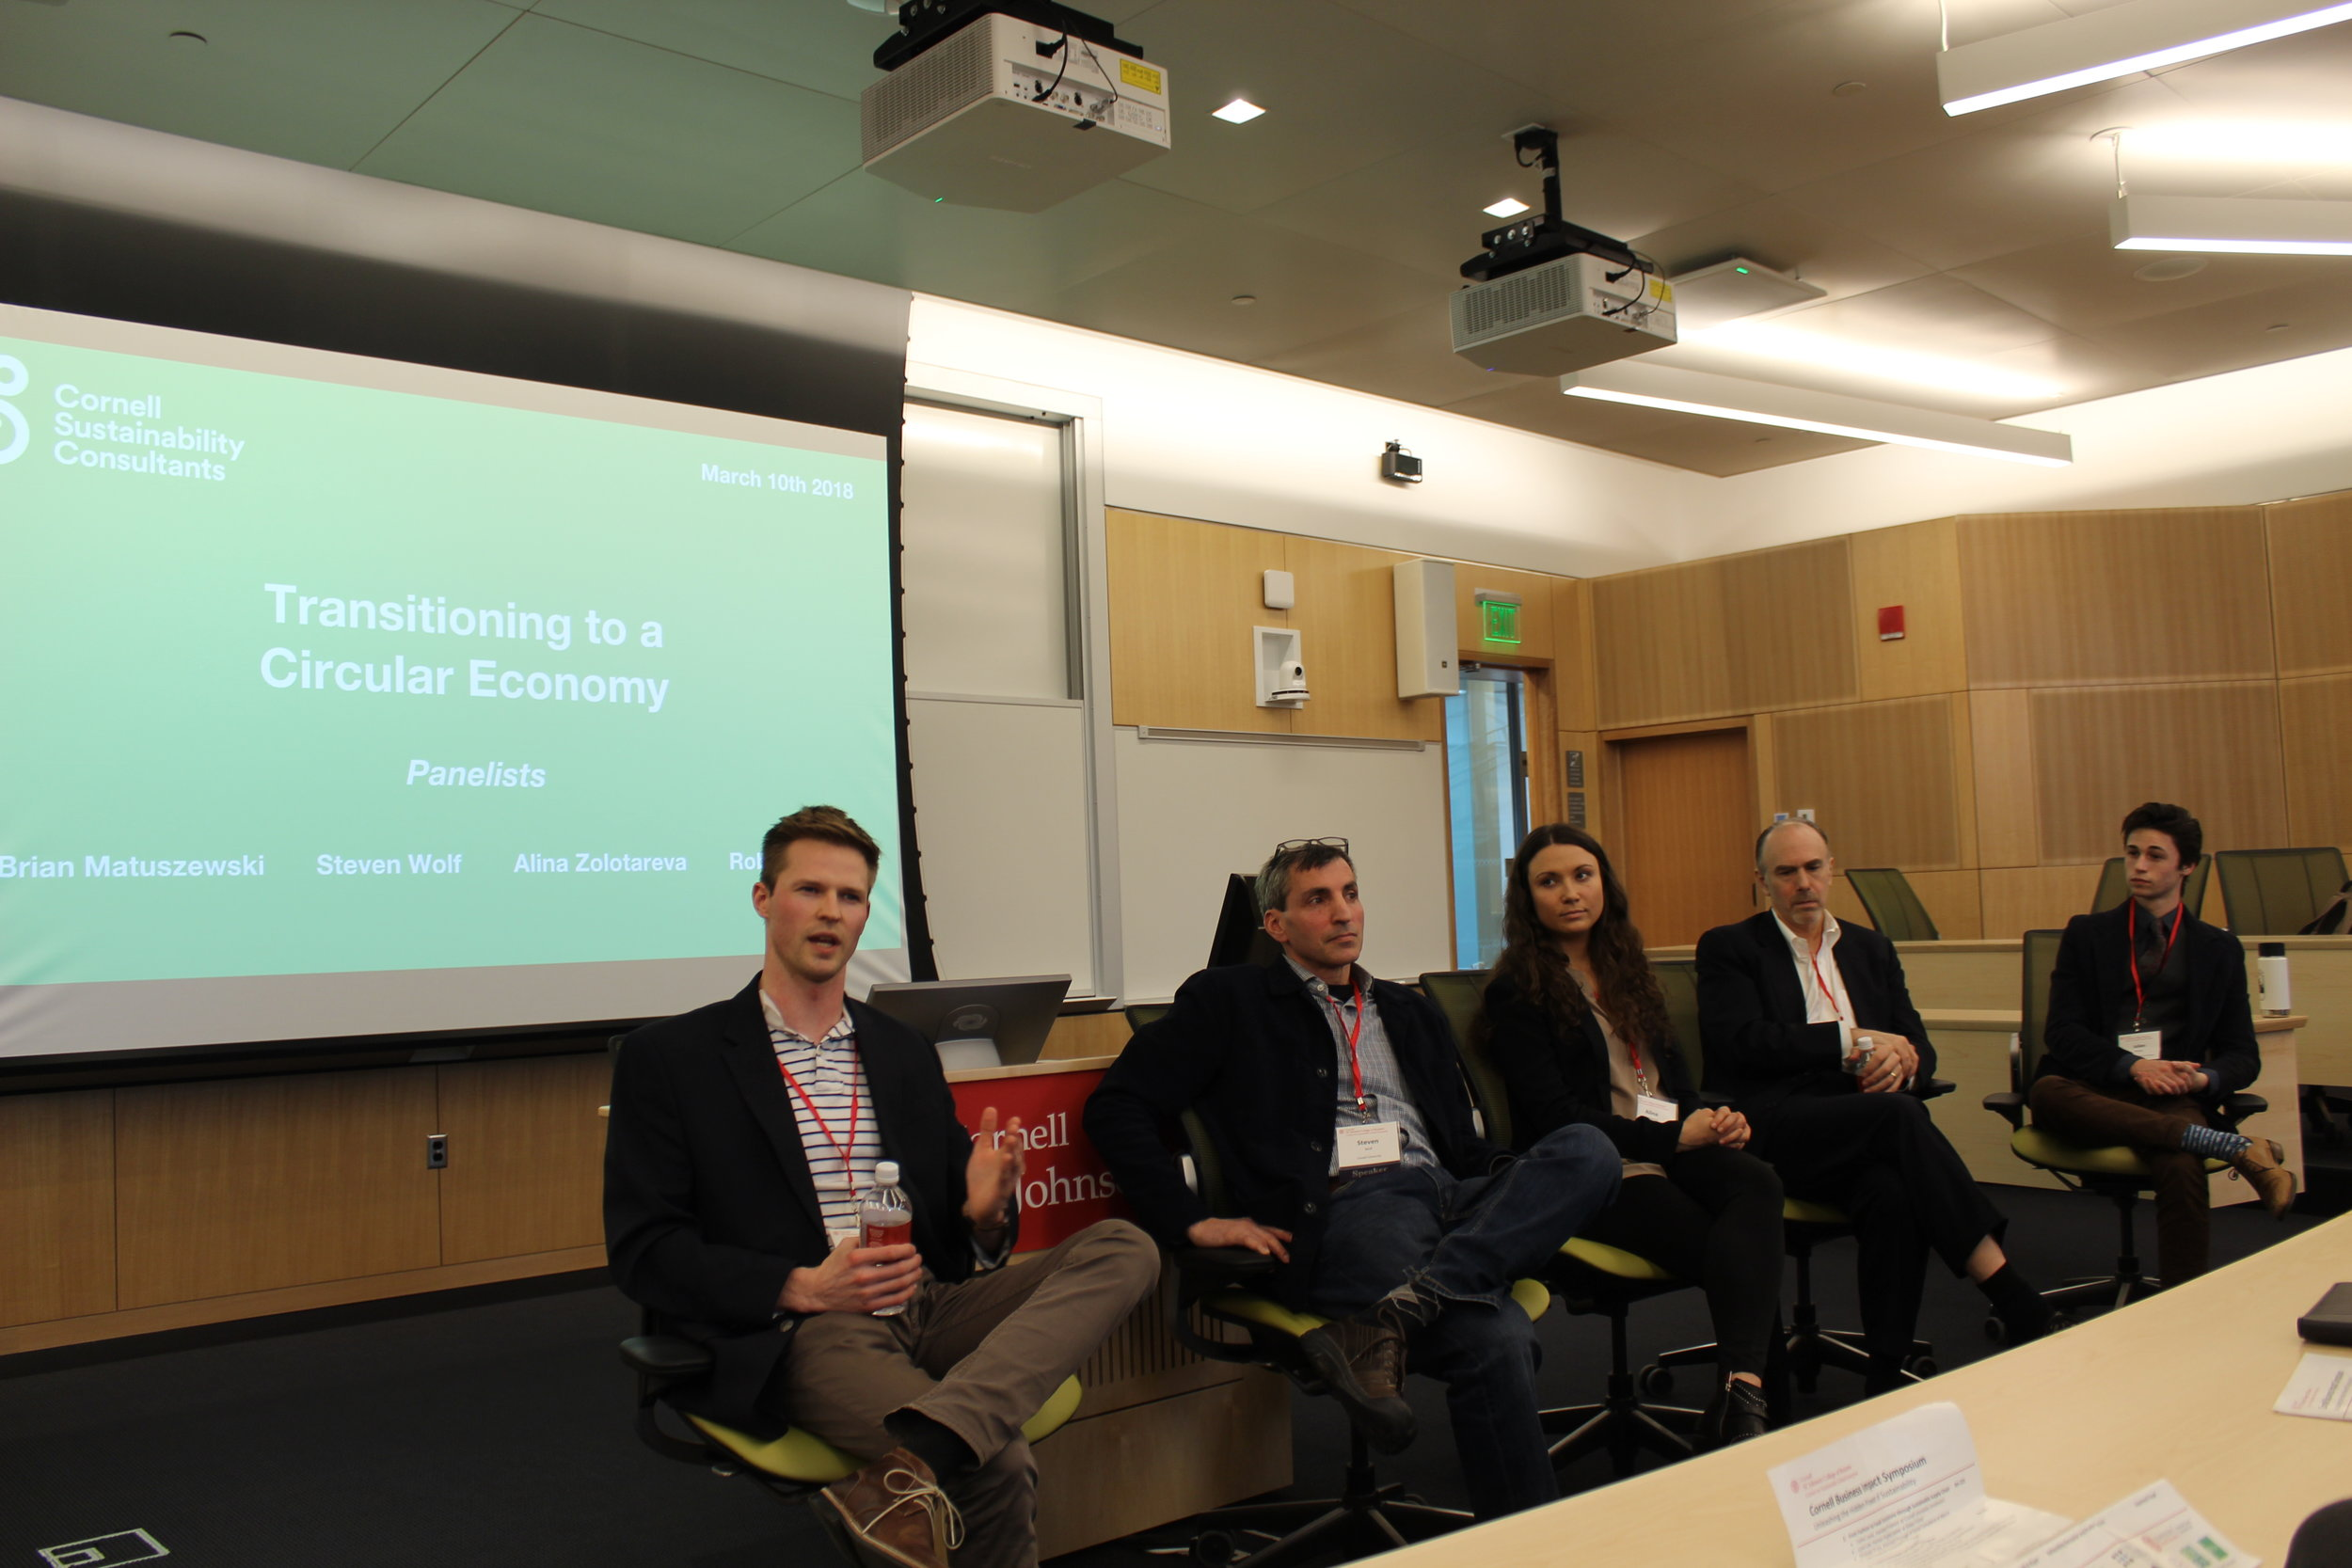 Cornell business Impact Symposium - At CBIS 2018, the team invited Rob Watson, Steven Wolf, Brian Matuszewski, and Alina Zolotareva to speak about the key barriers, the role of government, and various business models in the transition to a circular economy.At CBIS 2019, the team invited Ben Conard, Janet Helms, Matthew Himmel, Jennifer Ifft, and Erol Odabasi to speak about certifications such as Fair Trade and sustainability and ethics in the food industry.